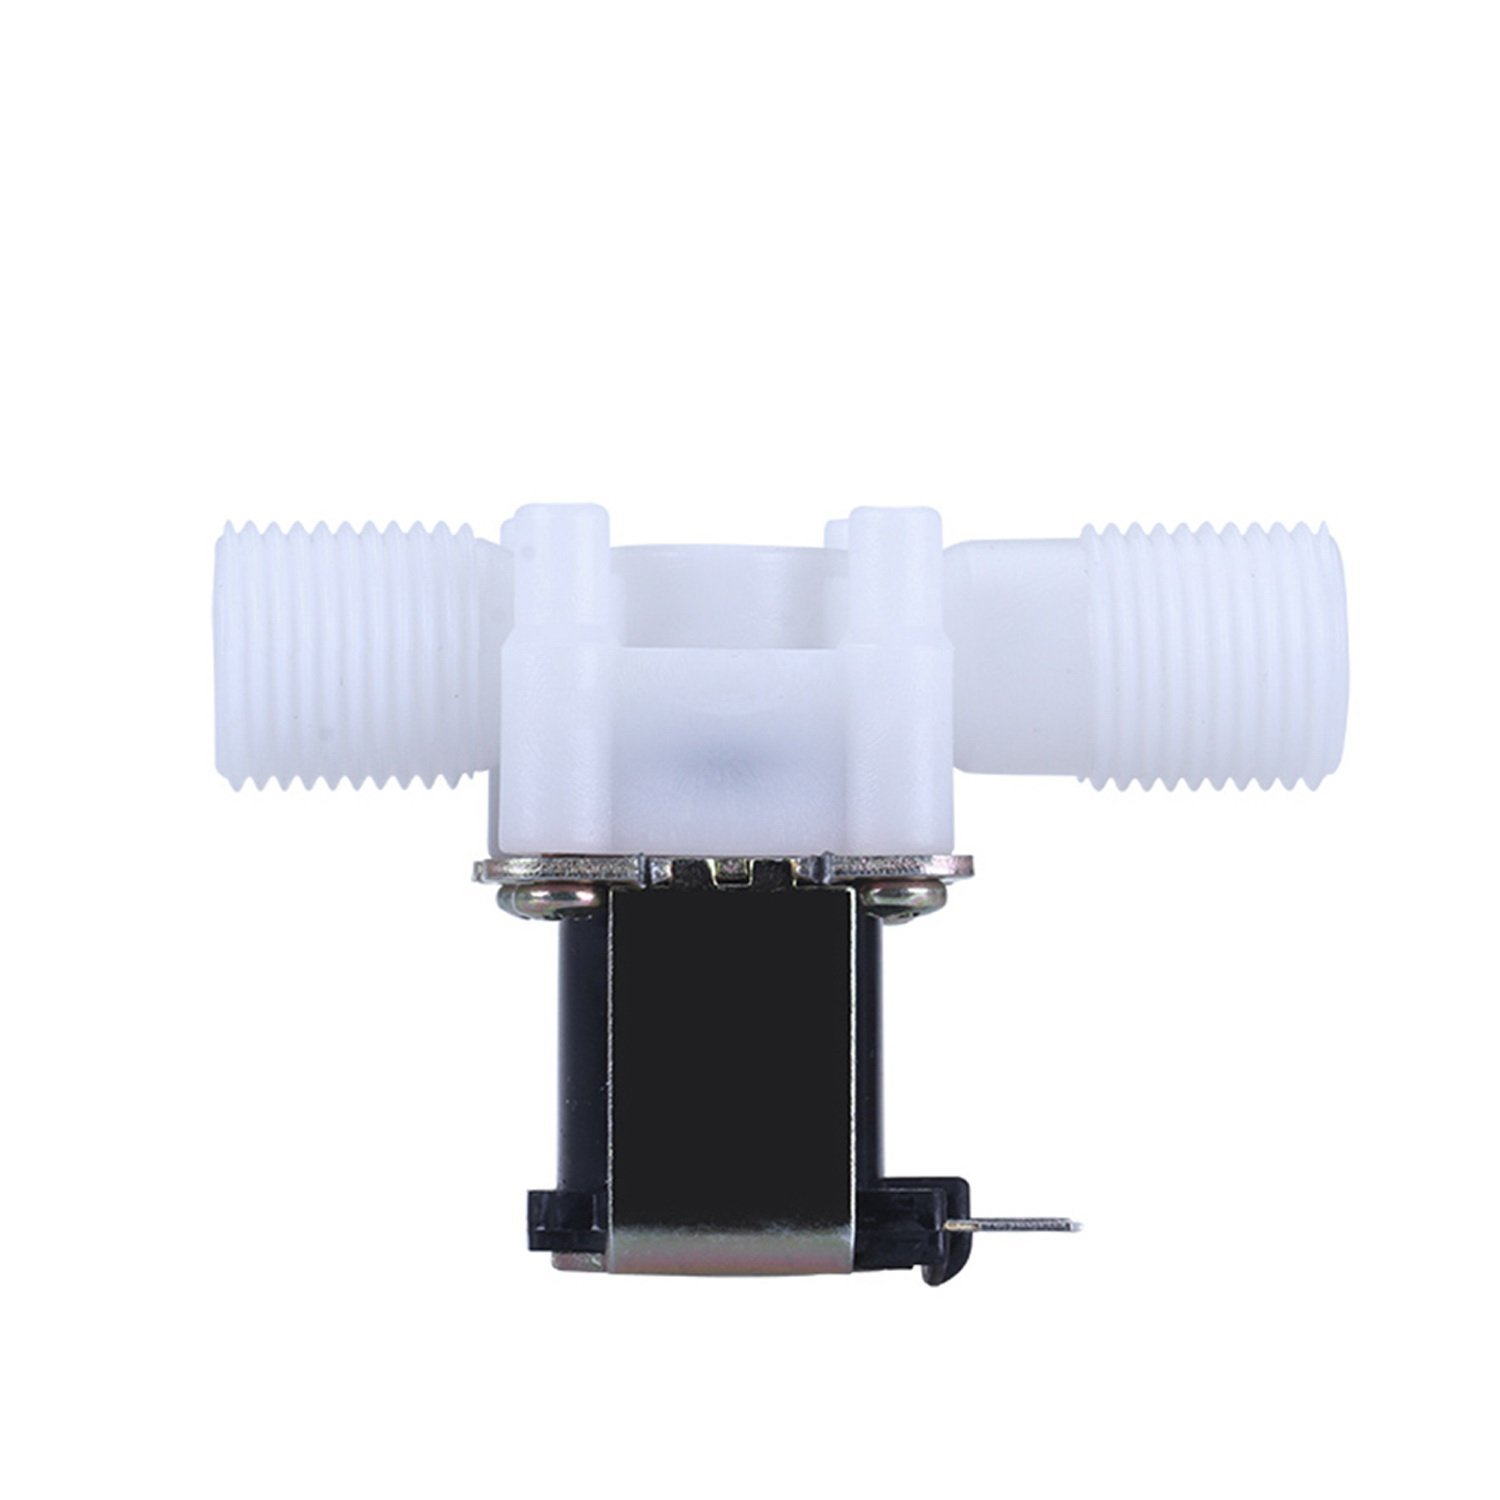 50 Of The Most Important Raspberry Pi Sensors And Components Hc Sr04 Wiringpi Magnet Valve